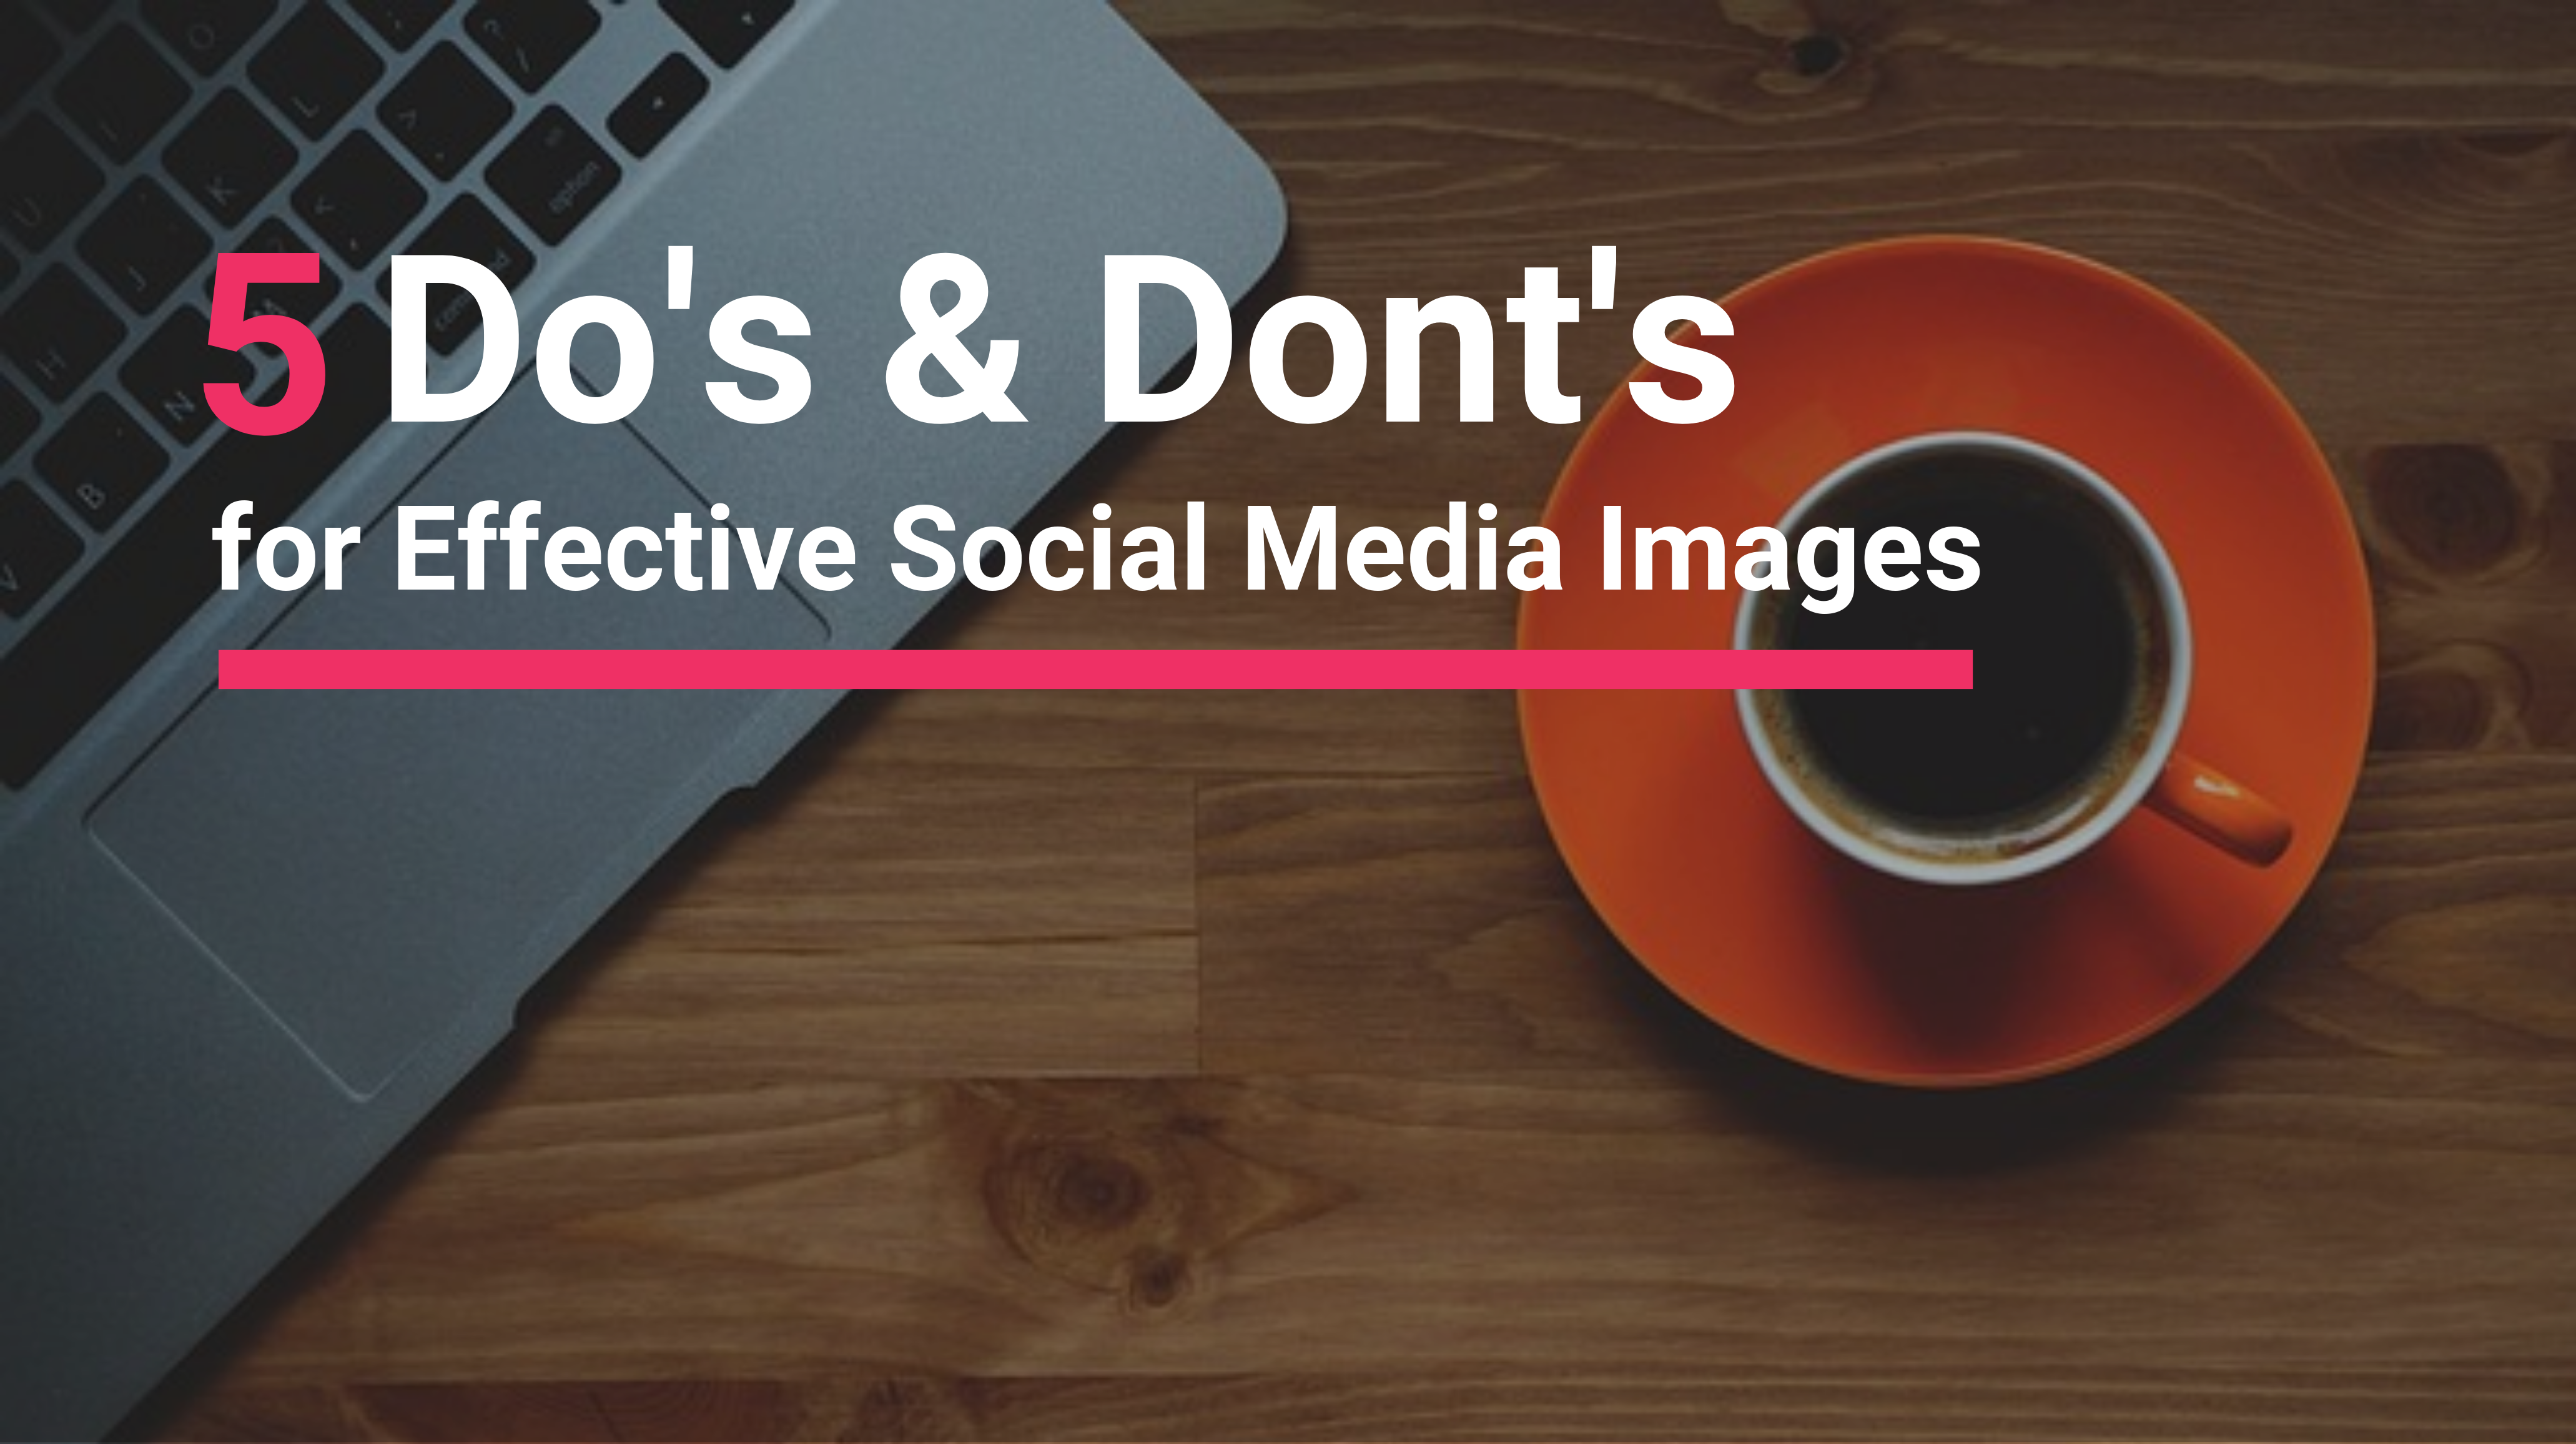 5 Do's and Dont's for Effective Social Media Images